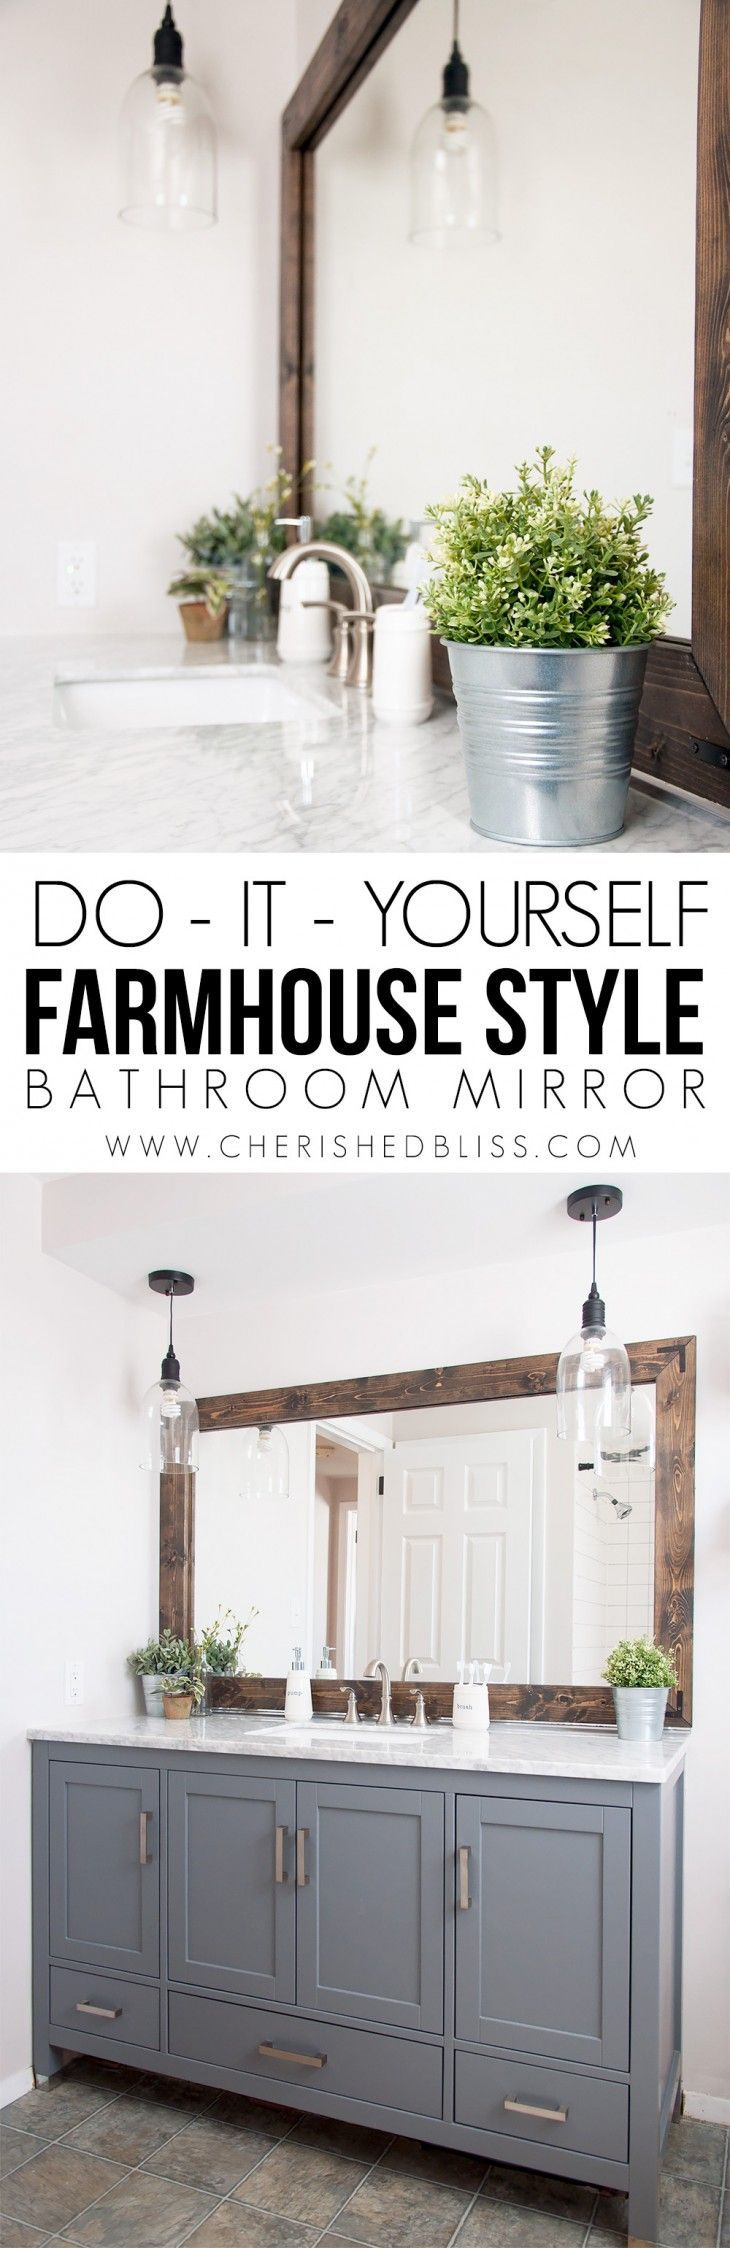 Framed Bathroom Mirrors Rustic best 25+ rustic bathroom mirrors ideas only on pinterest | pallet